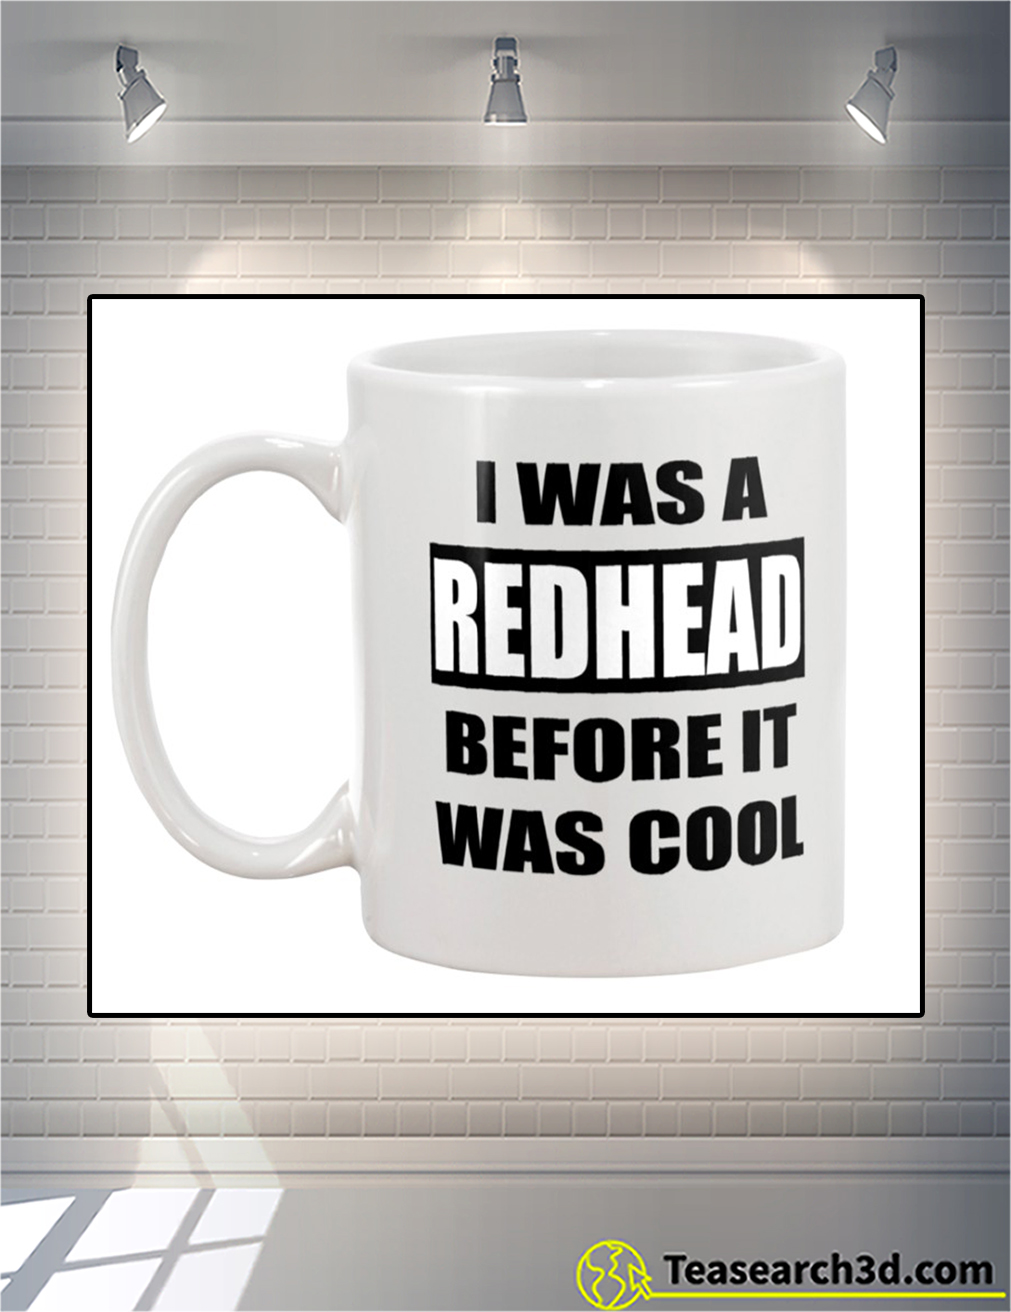 I was a red head before it was cool mug back